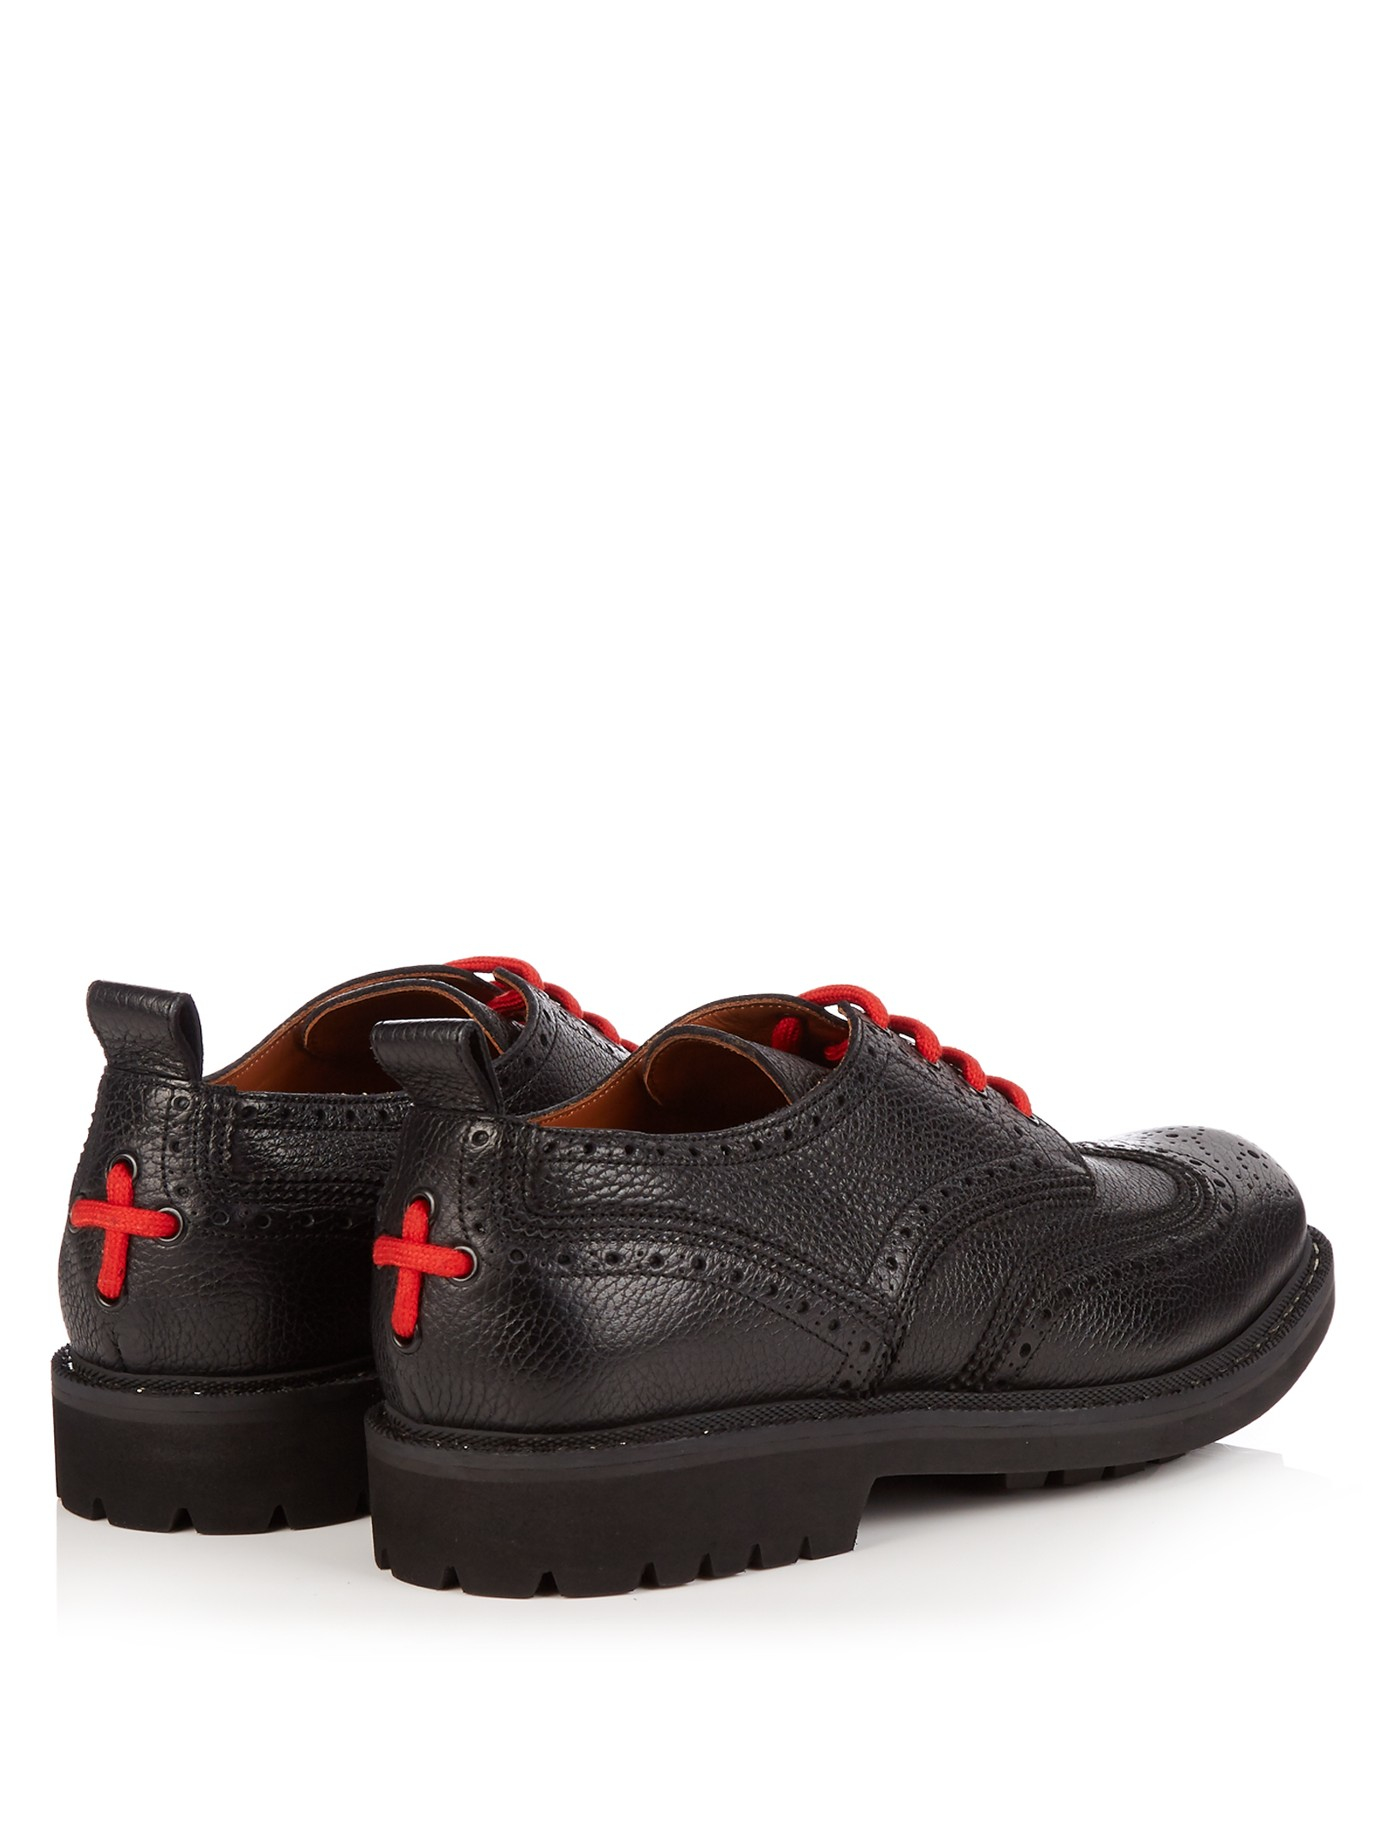 Givenchy Commando Leather Brogues in Black for Men